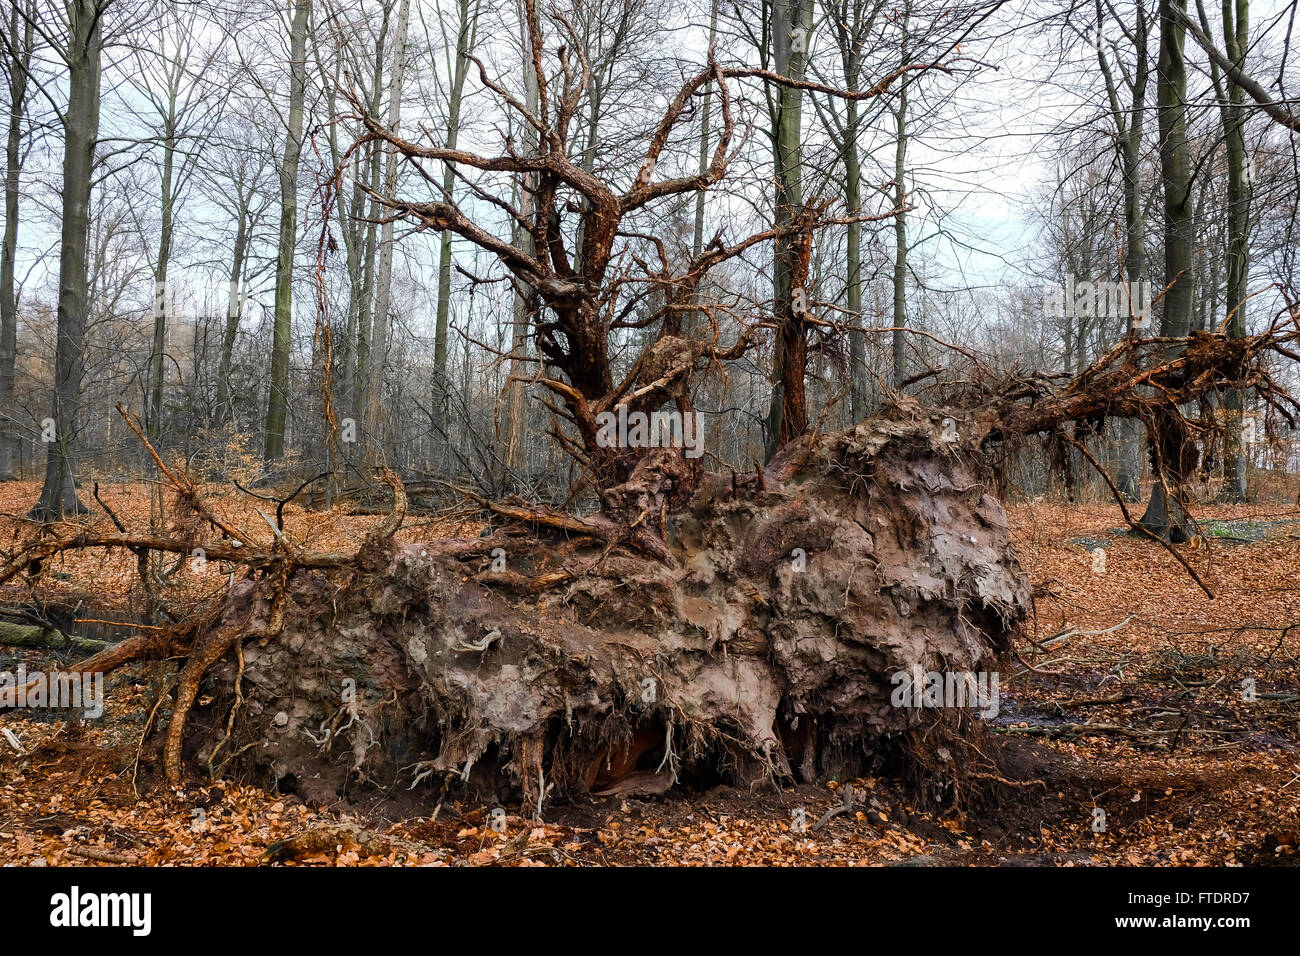 tree root of a fallen pine tree in the woods - Stock Image